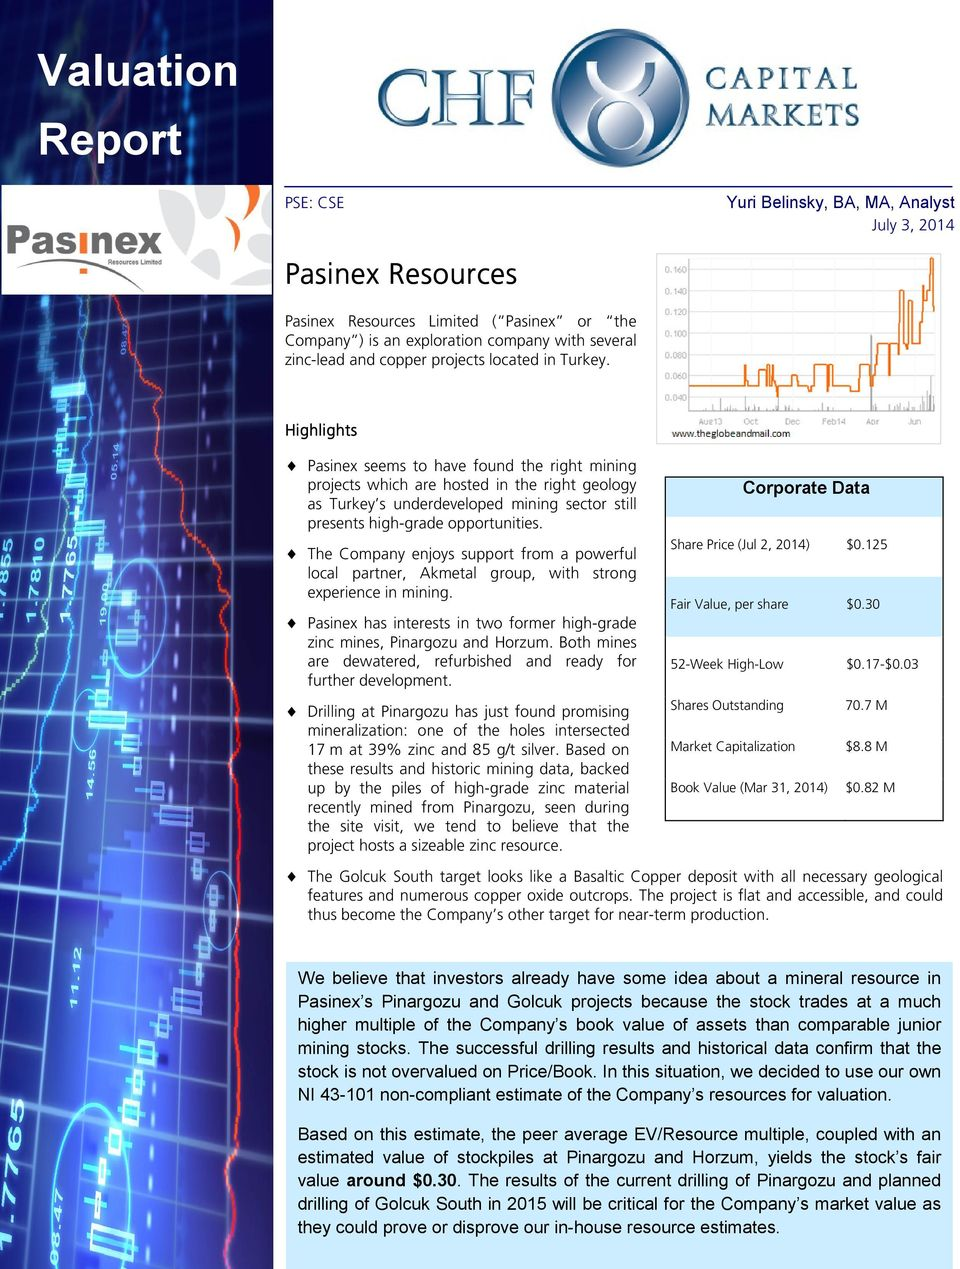 Highlights Pasinex seems to have found the right mining projects which are hosted in the right geology as Turkey s underdeveloped mining sector still presents high-grade opportunities.